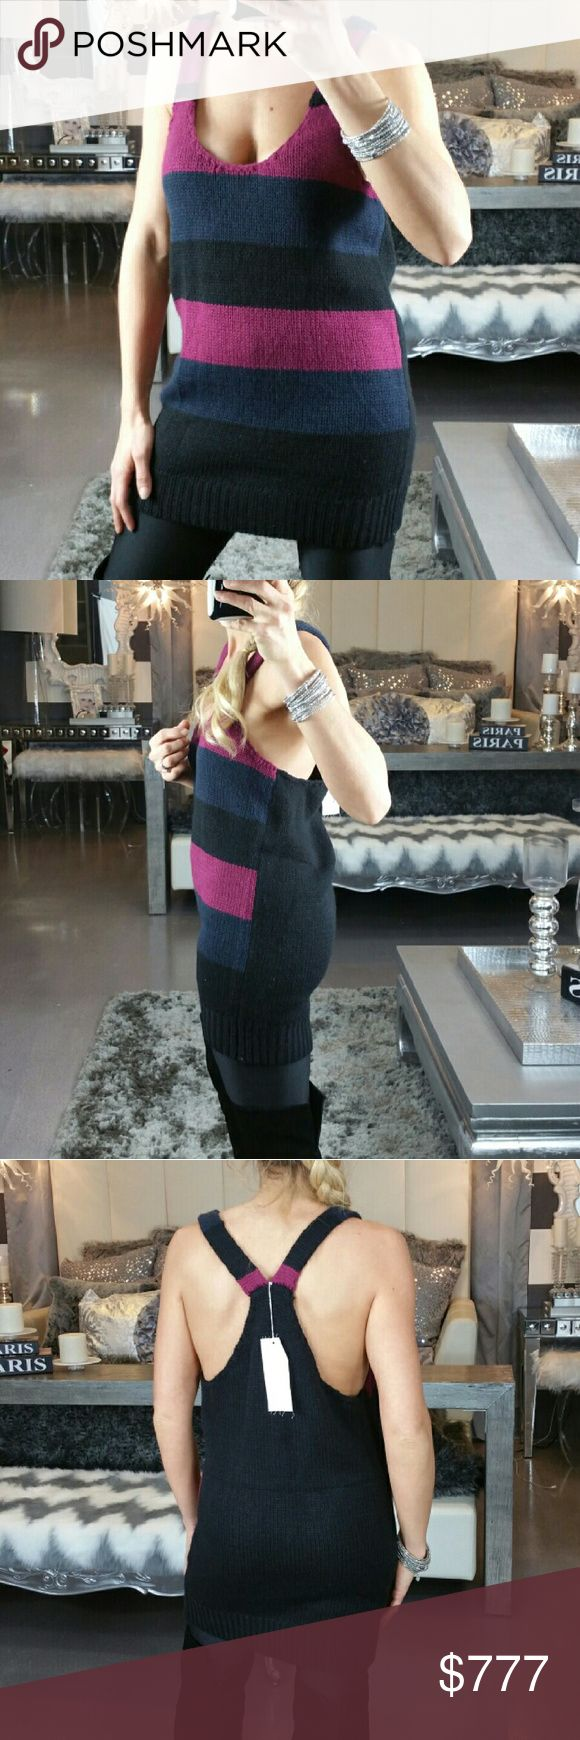 """Knitted tank top New with tags  Knitted low cut tank top. Wear with or without a top underneath. Pair with leggings, boots and a denim jacket. Could be worn as a mini dress with a turtleneck underneath and knee high boots.  100%acrylic Size medium Length 30"""" Bust approx 18"""" across  💖Shop with confidence 💖 🎊🎉Suggested User 🎊🎉 💌📮Same day shipping 📮 💌  5 star 🌟 🌟 🌟 🌟 🌟 rated closet Tops Tank Tops"""